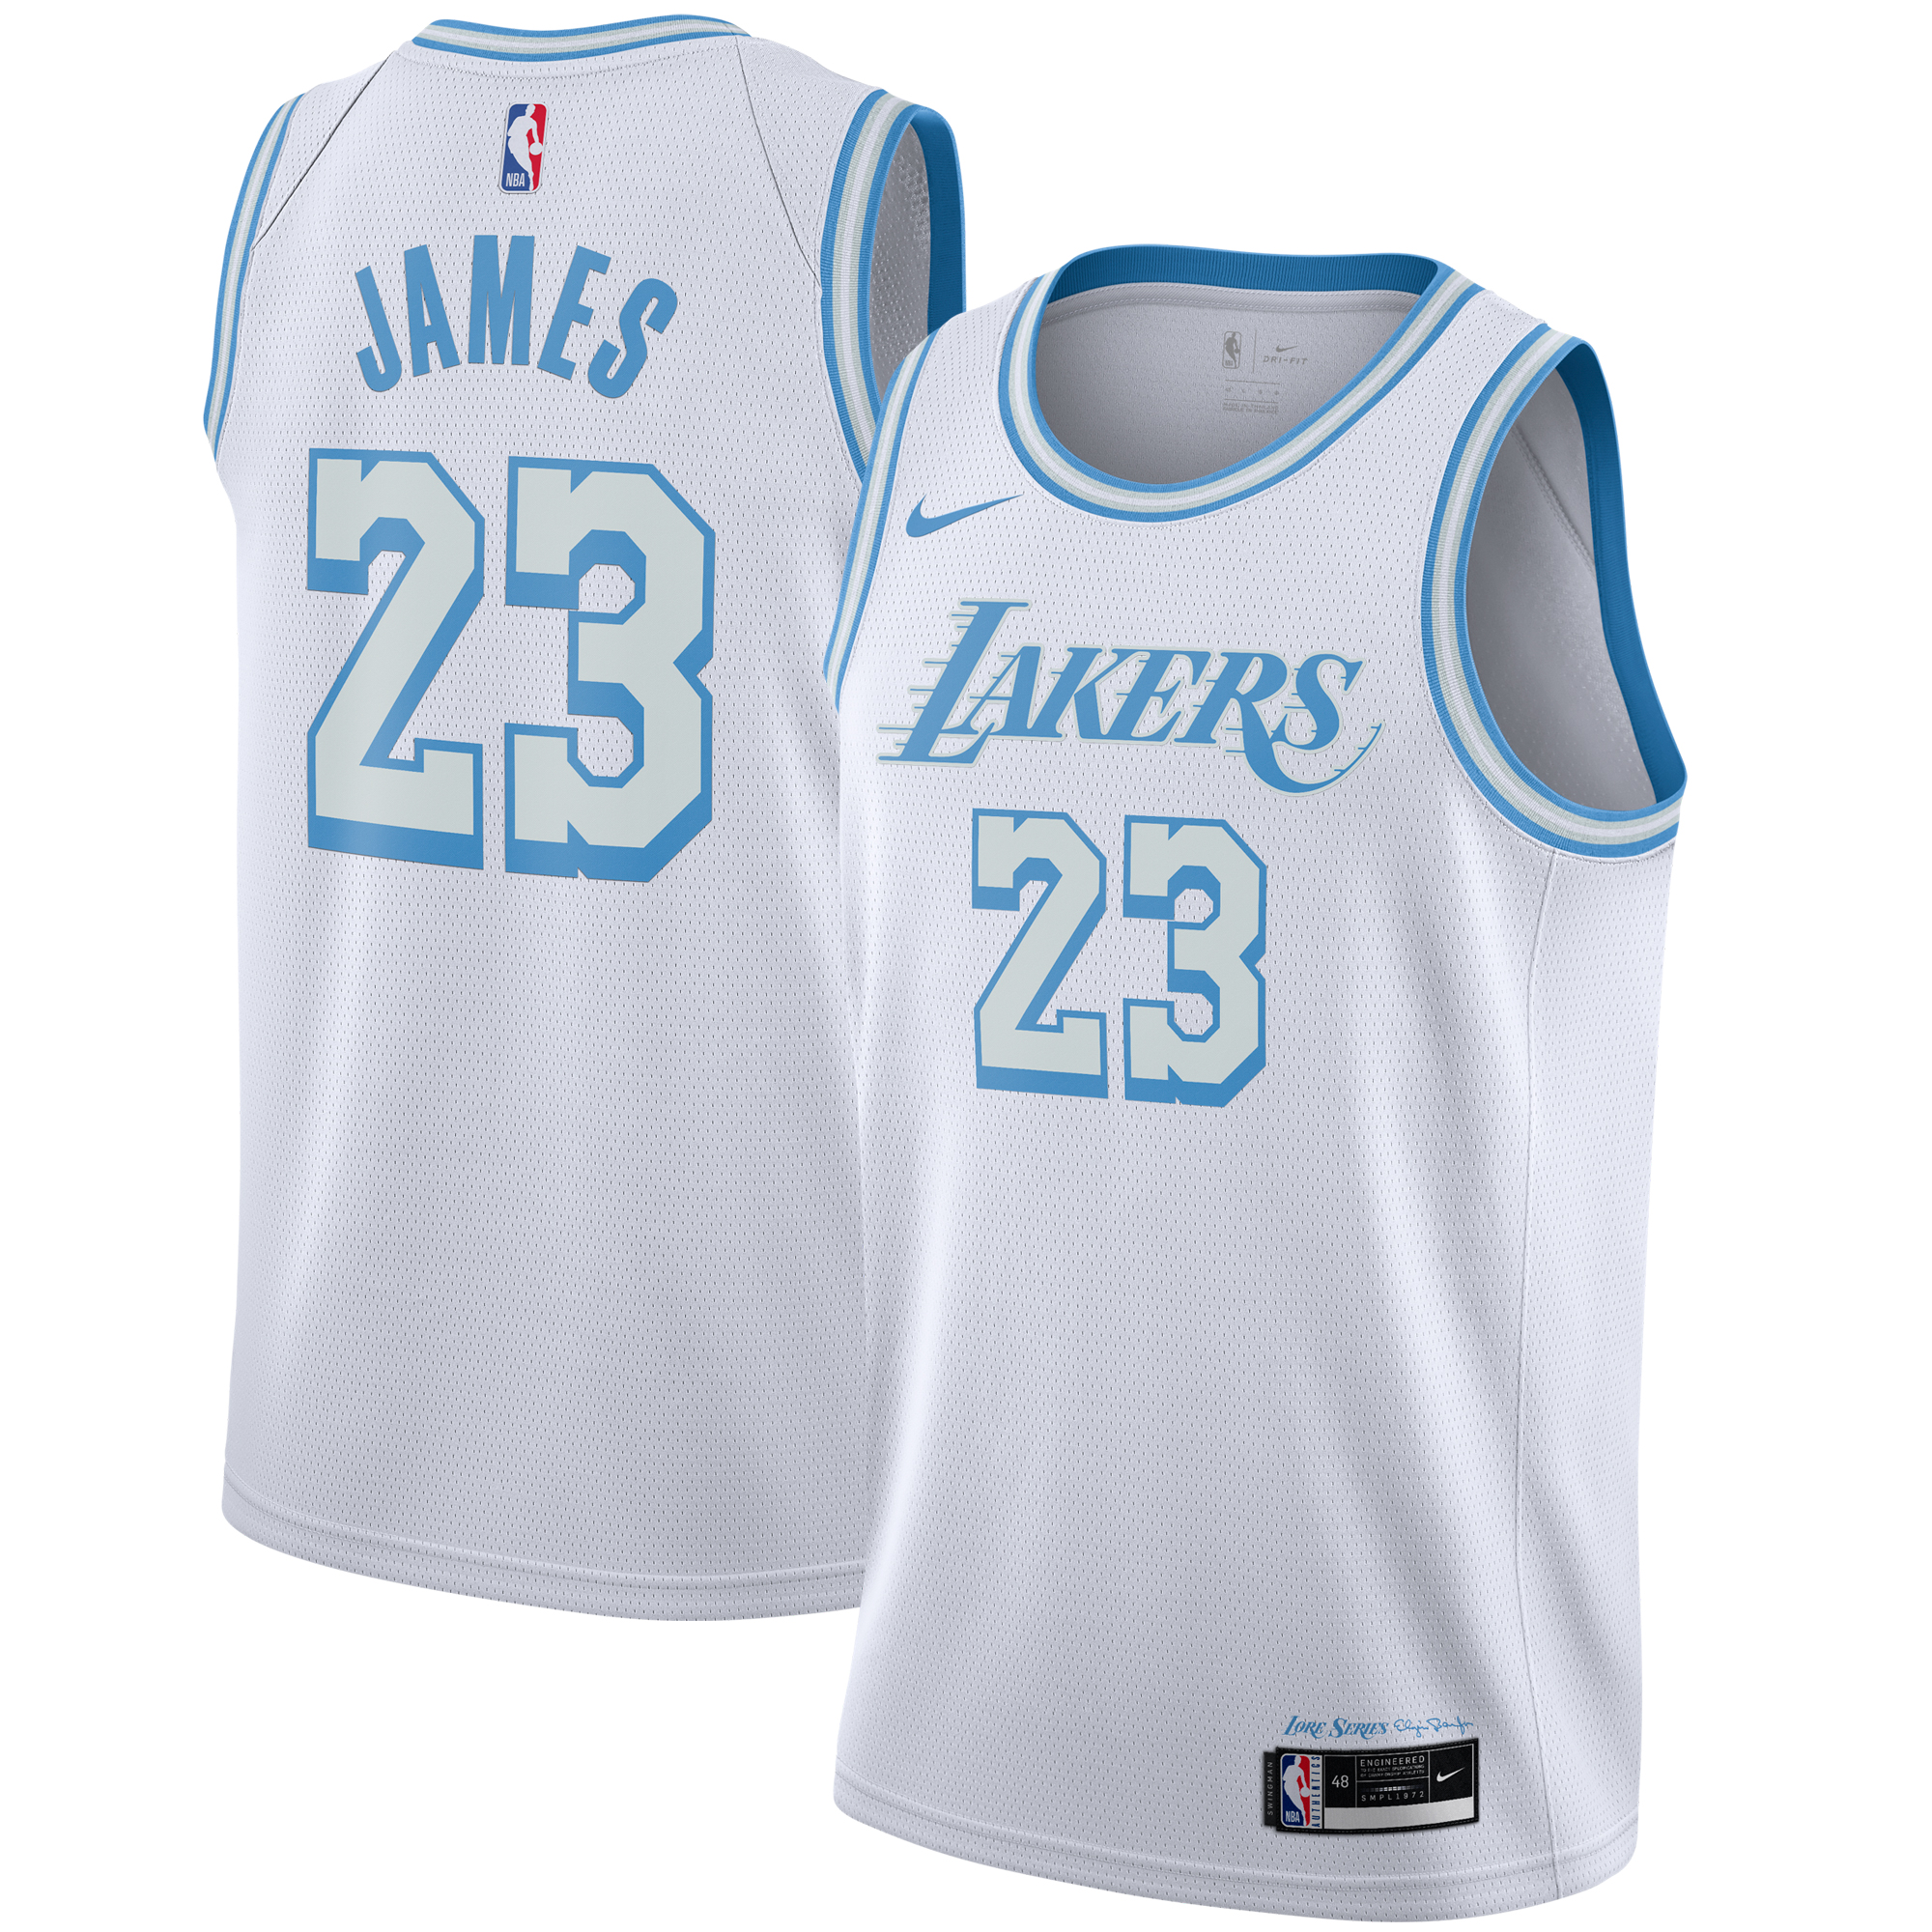 LeBron James #23 Los Angeles Lakers 2021 White City Edition ...